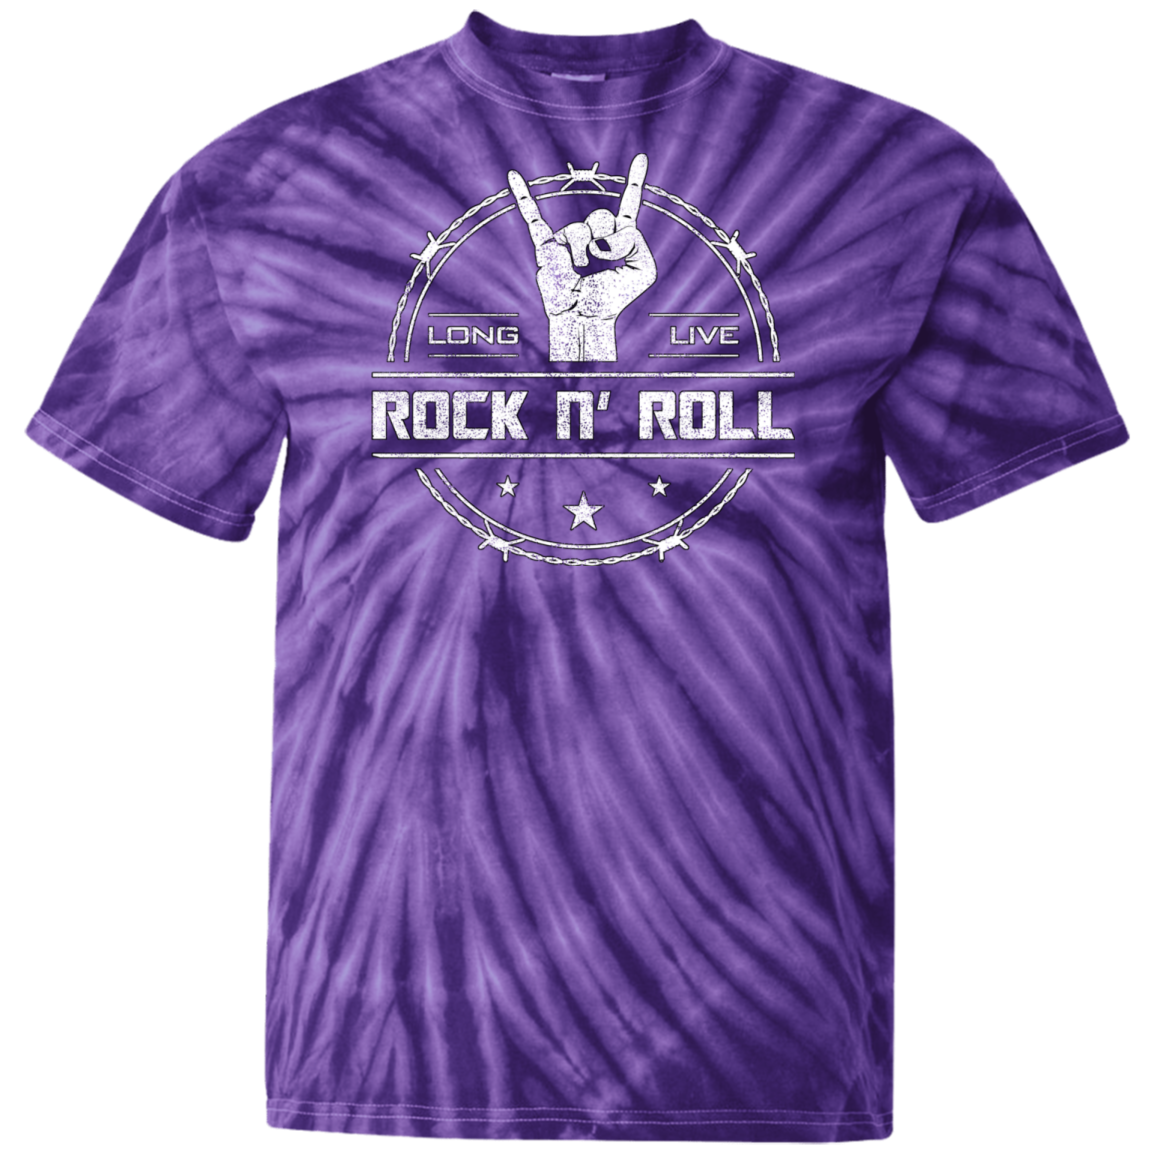 cool long live rock and roll tshirt